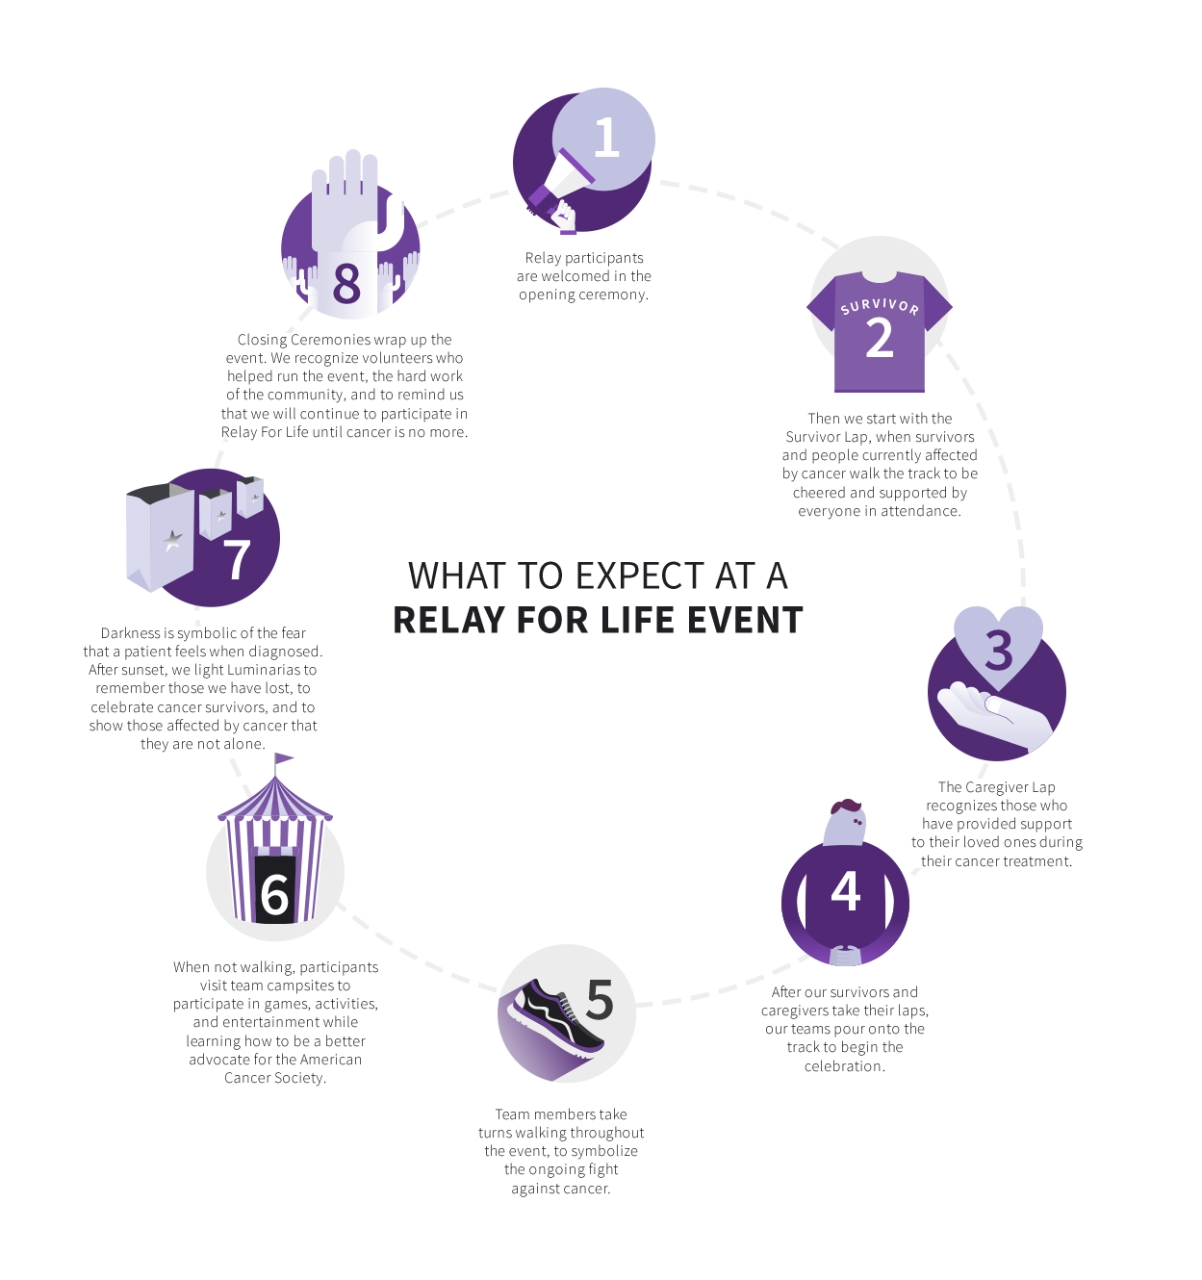 10 Most Popular Relay For Life Activity Ideas relay for life cancer walk american cancer society 2020